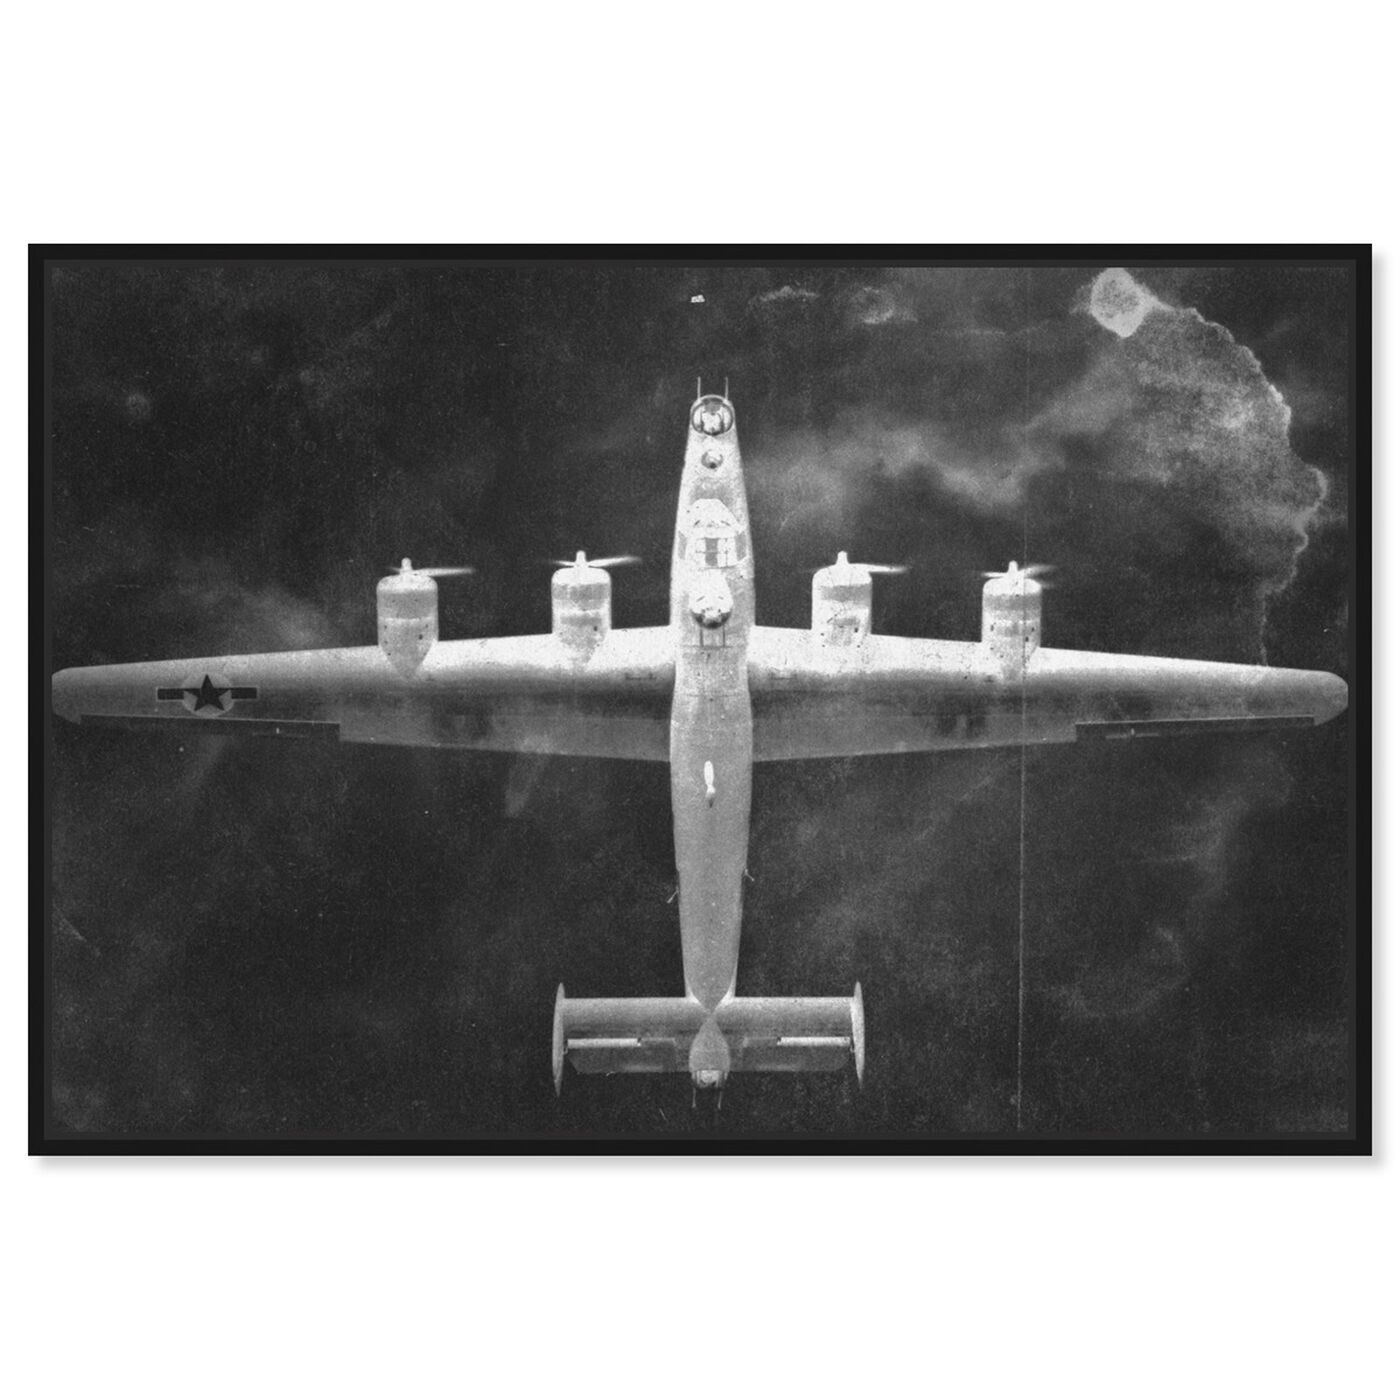 Front view of Aircraft Inverted featuring transportation and airplanes art.